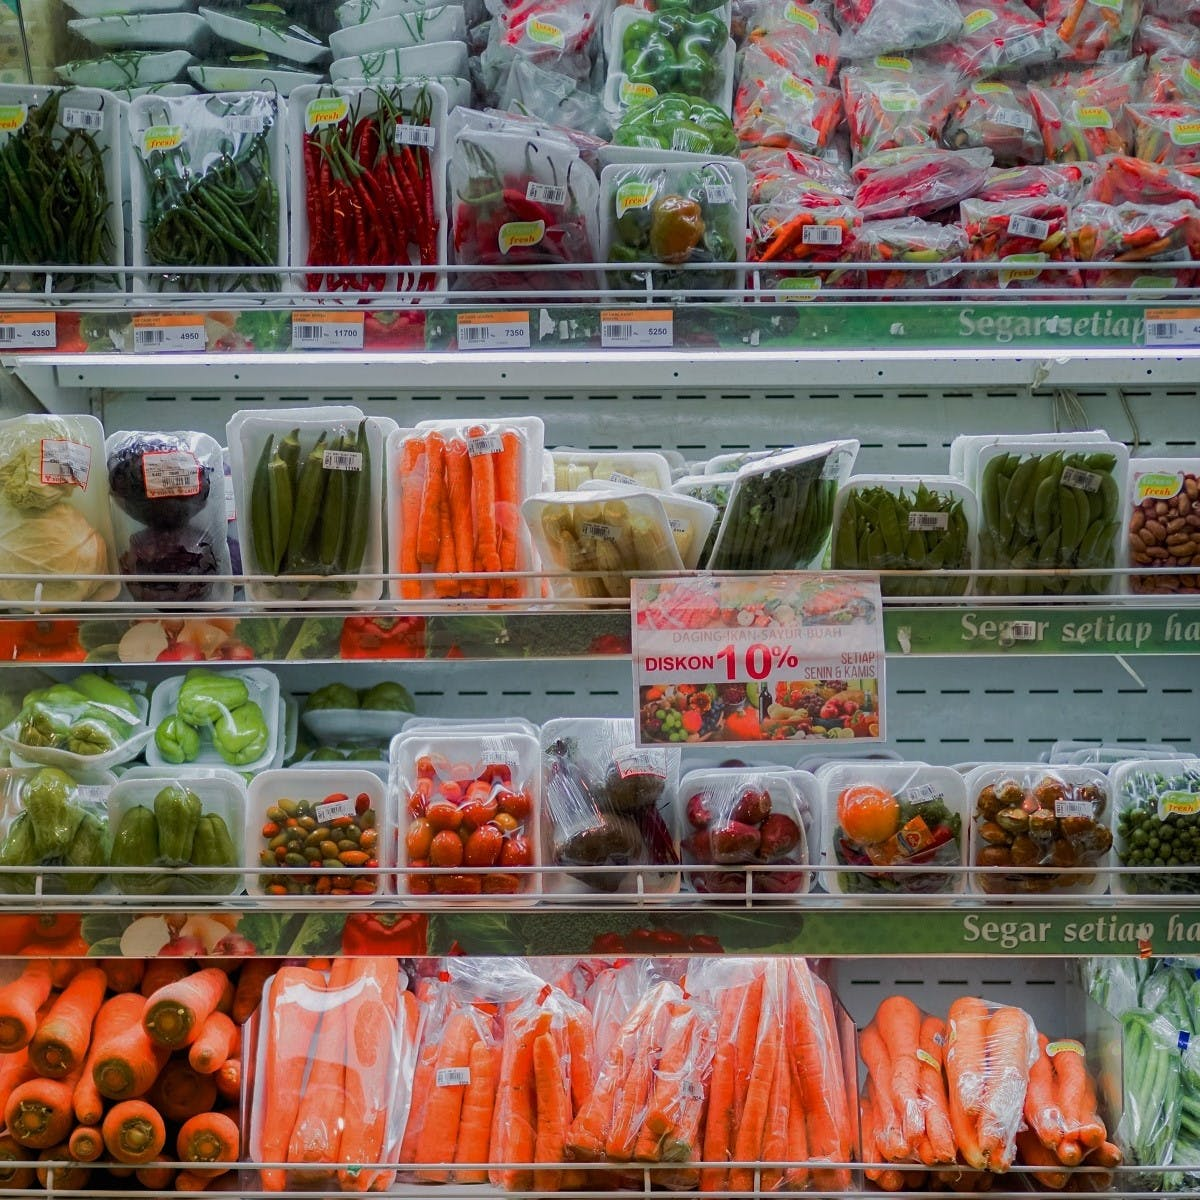 Various vegetables wrapped in plastic packaging in a supermarket. To refuse single use plastics such as needless packaging, is the first steps in living plastic free.